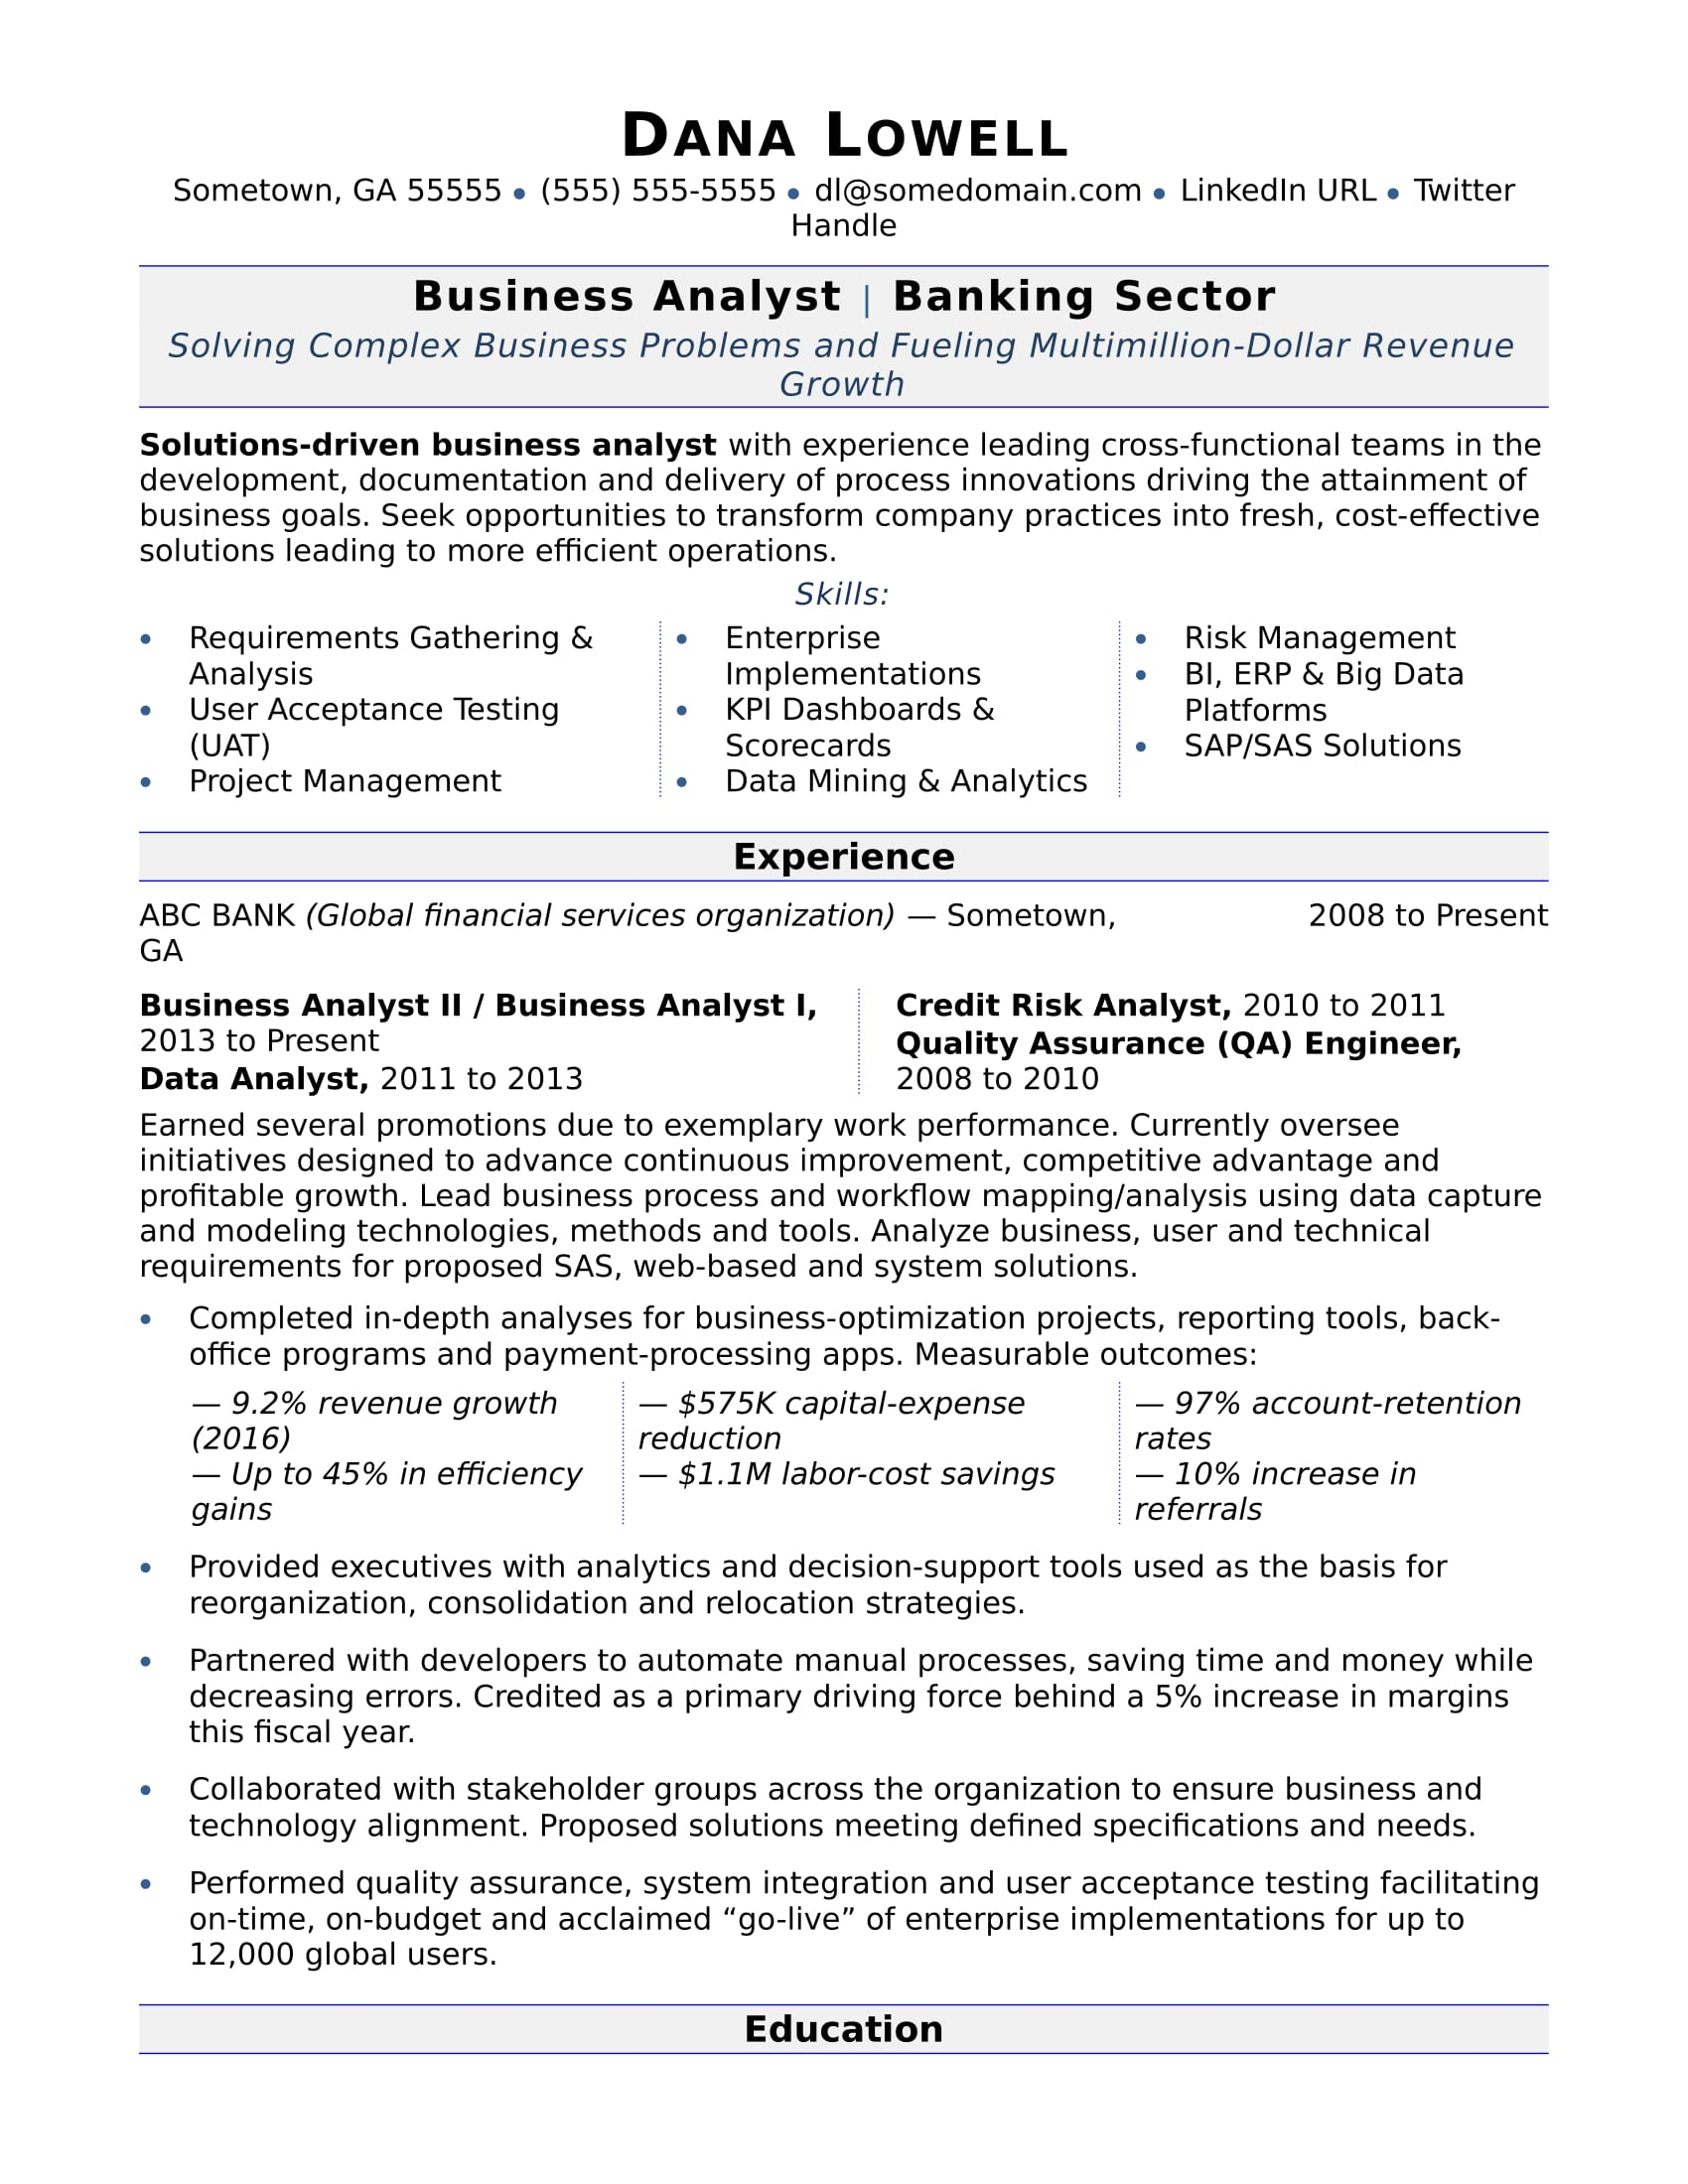 business analyst resume sample - Sample Resume Business Analyst